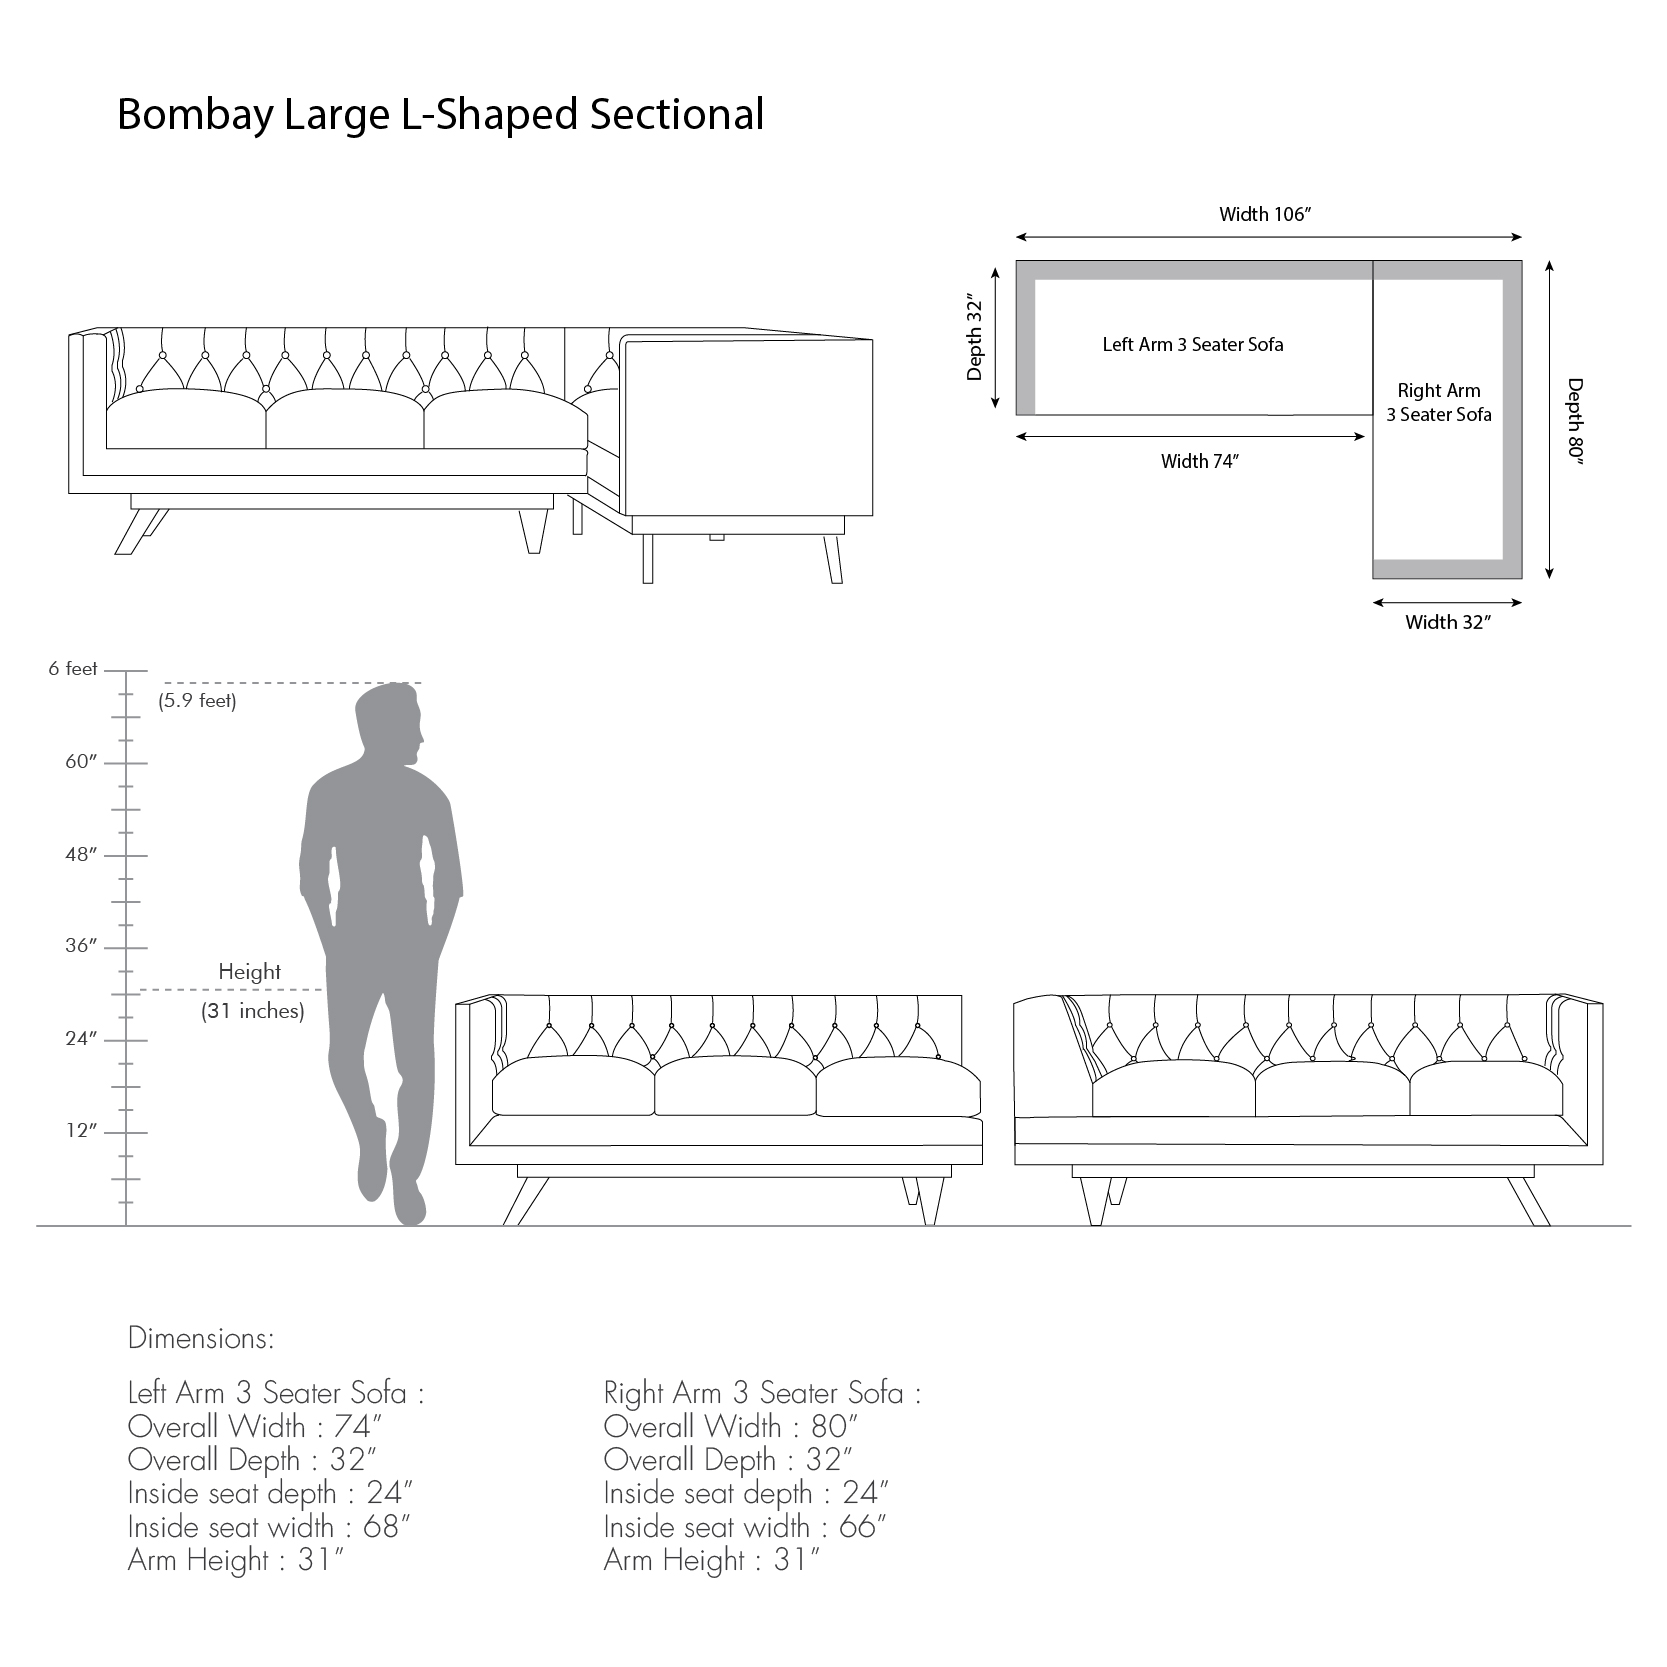 Bombay Large L-shaped Sectional